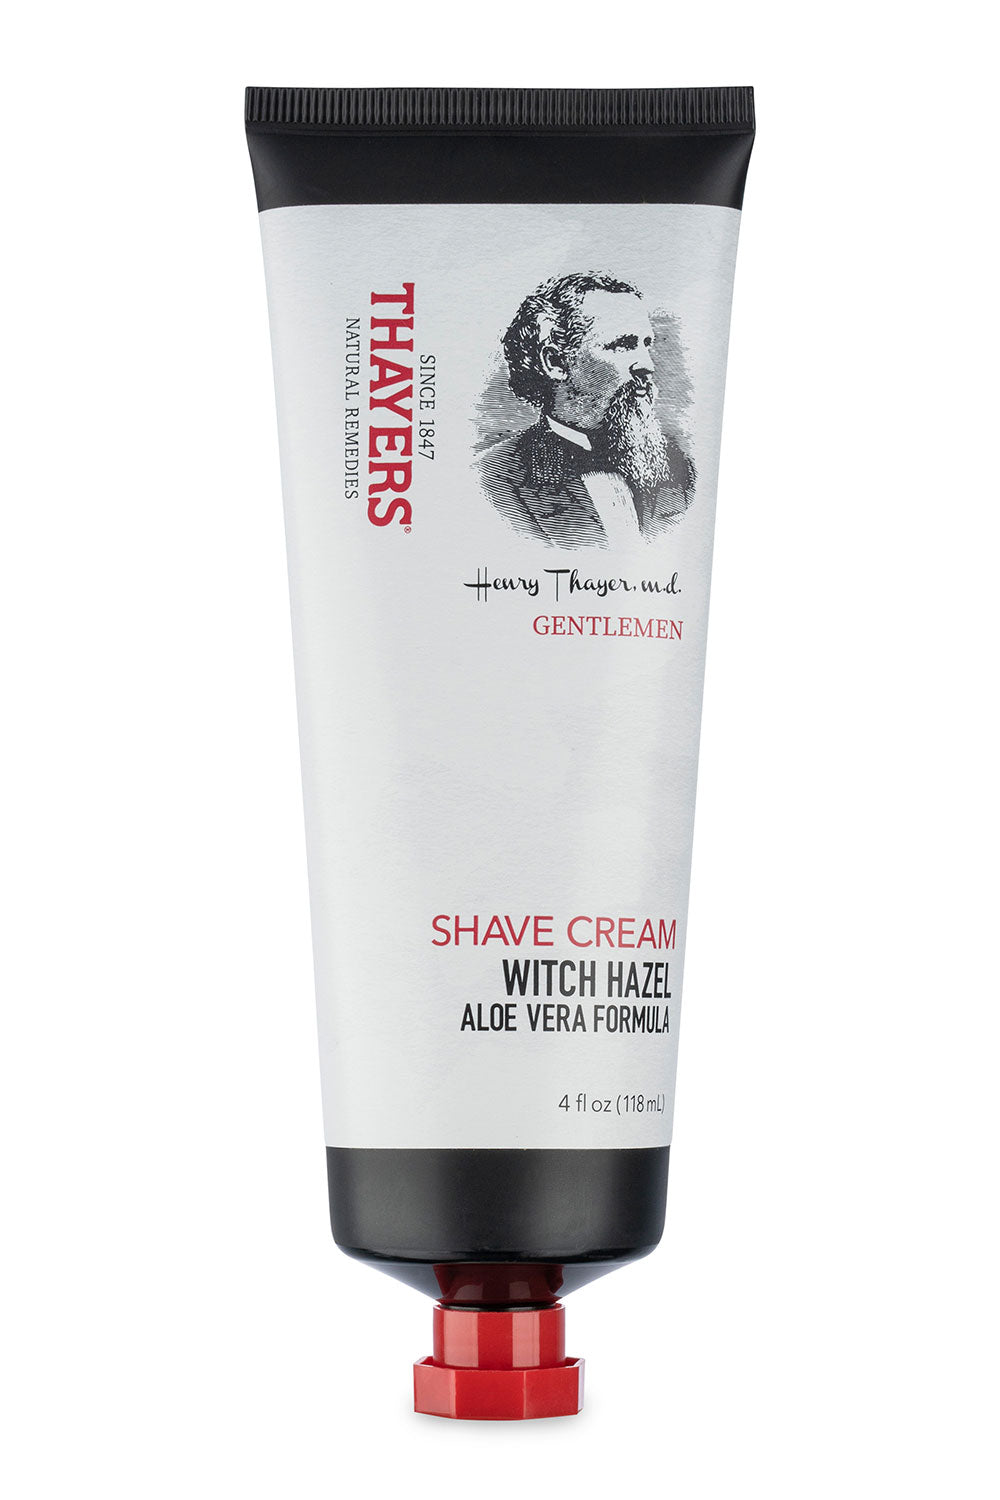 Thayers Witch Hazel- Gentlemen's Shave Cream